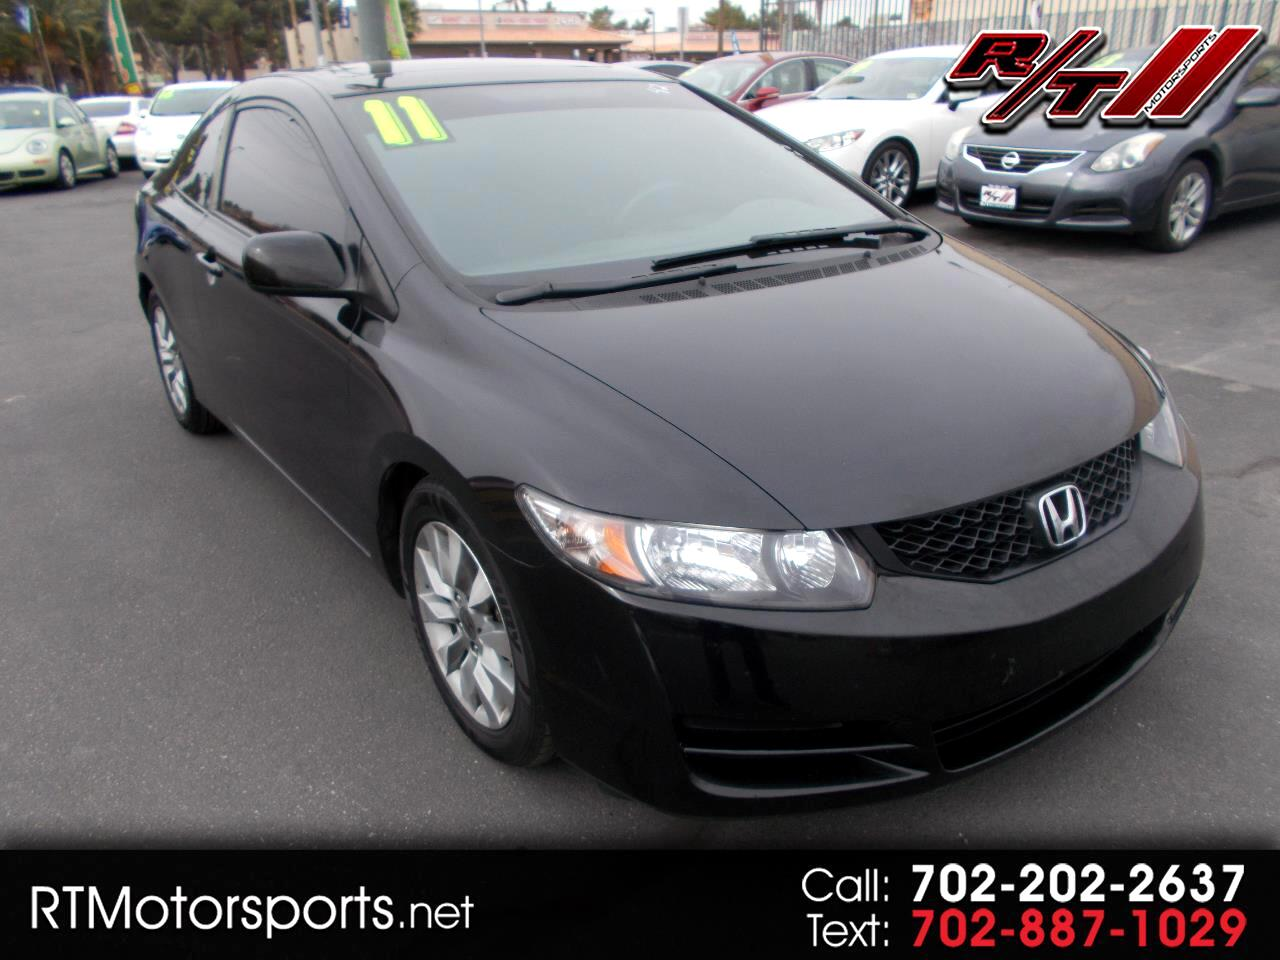 Honda Civic EX Coupe 5-Speed AT 2011